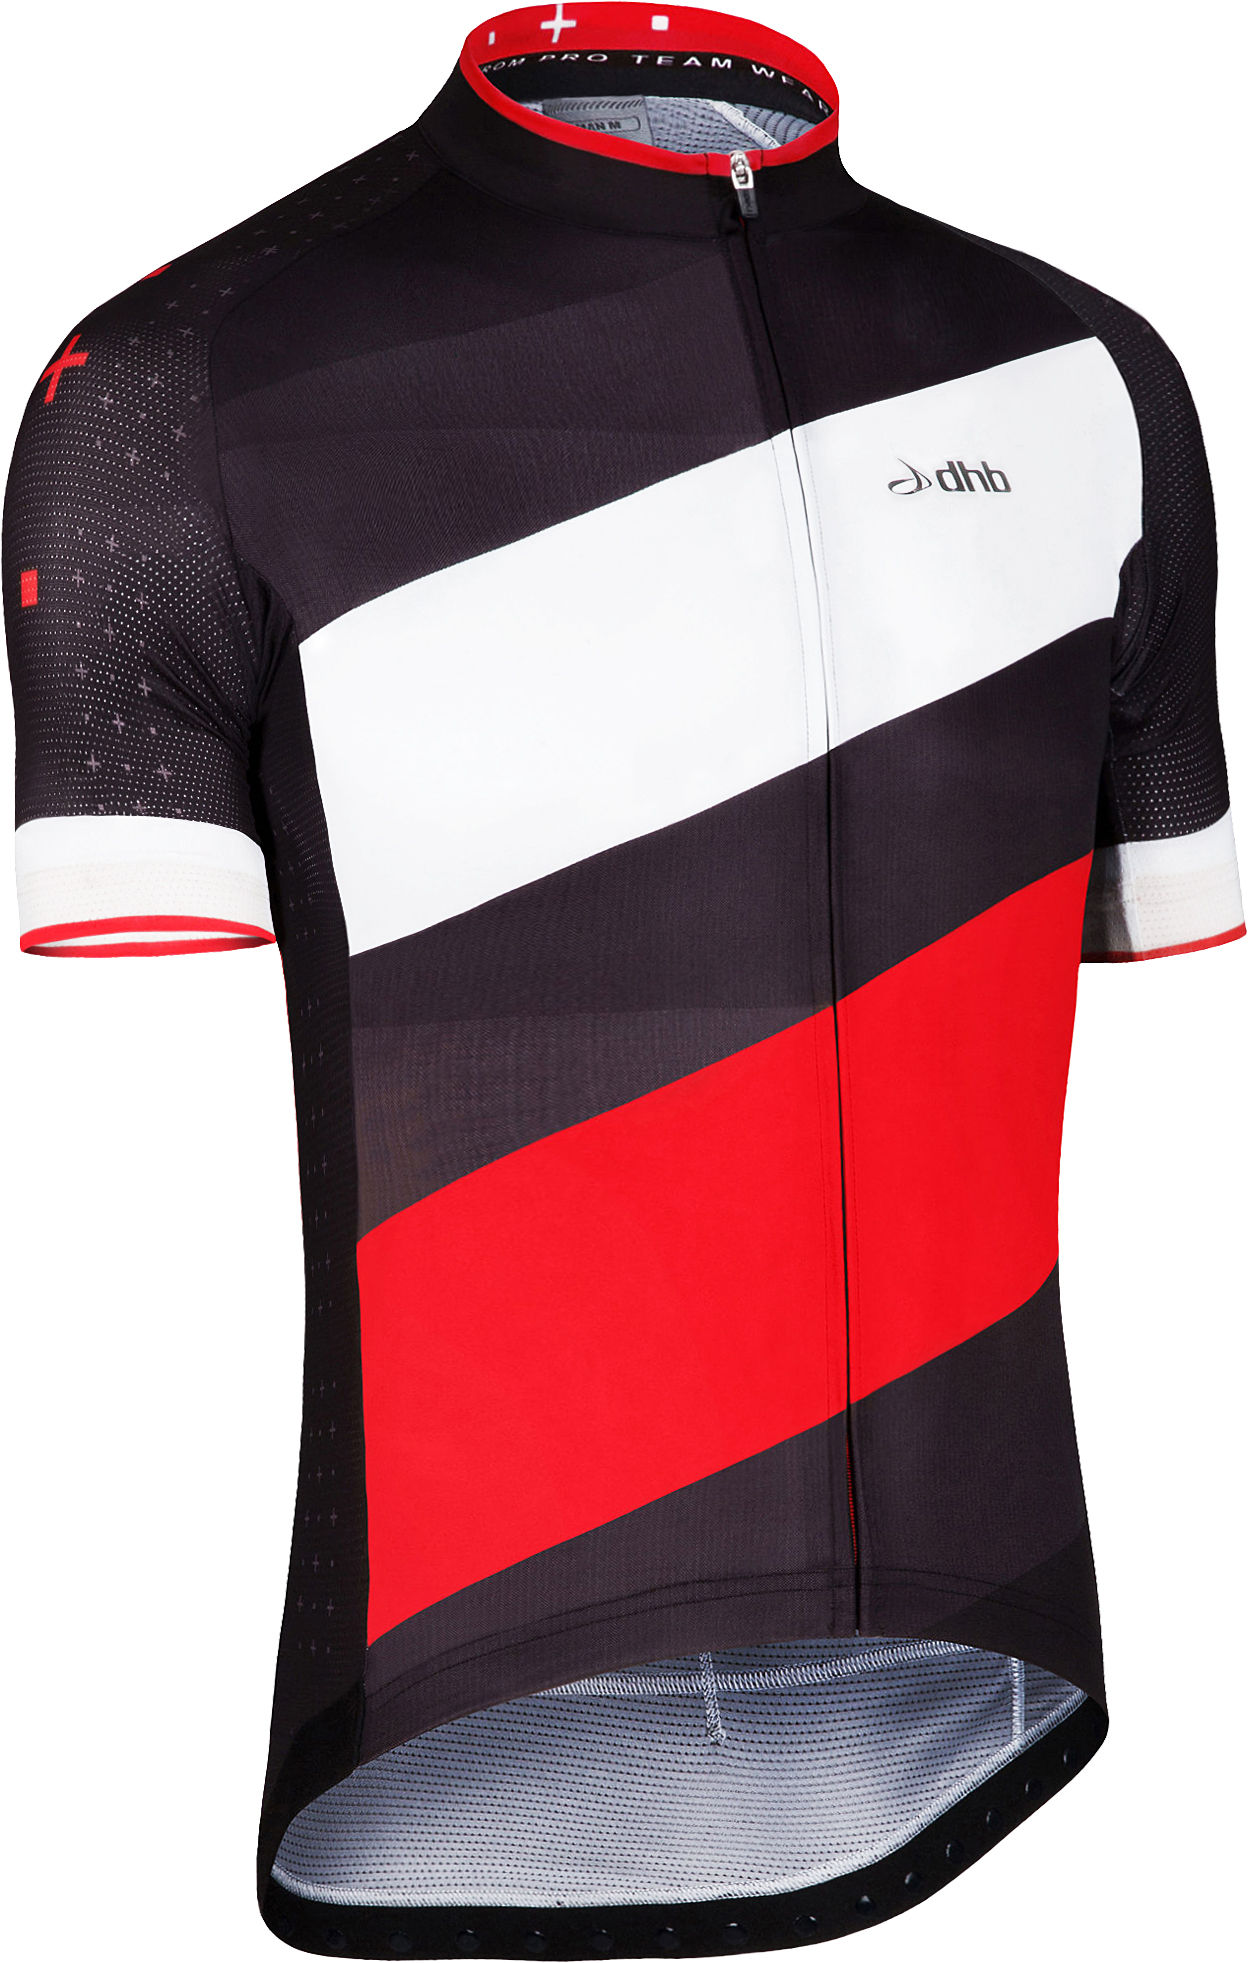 Dhb Unveils Professional Cycle Clothing Cycling Weekly